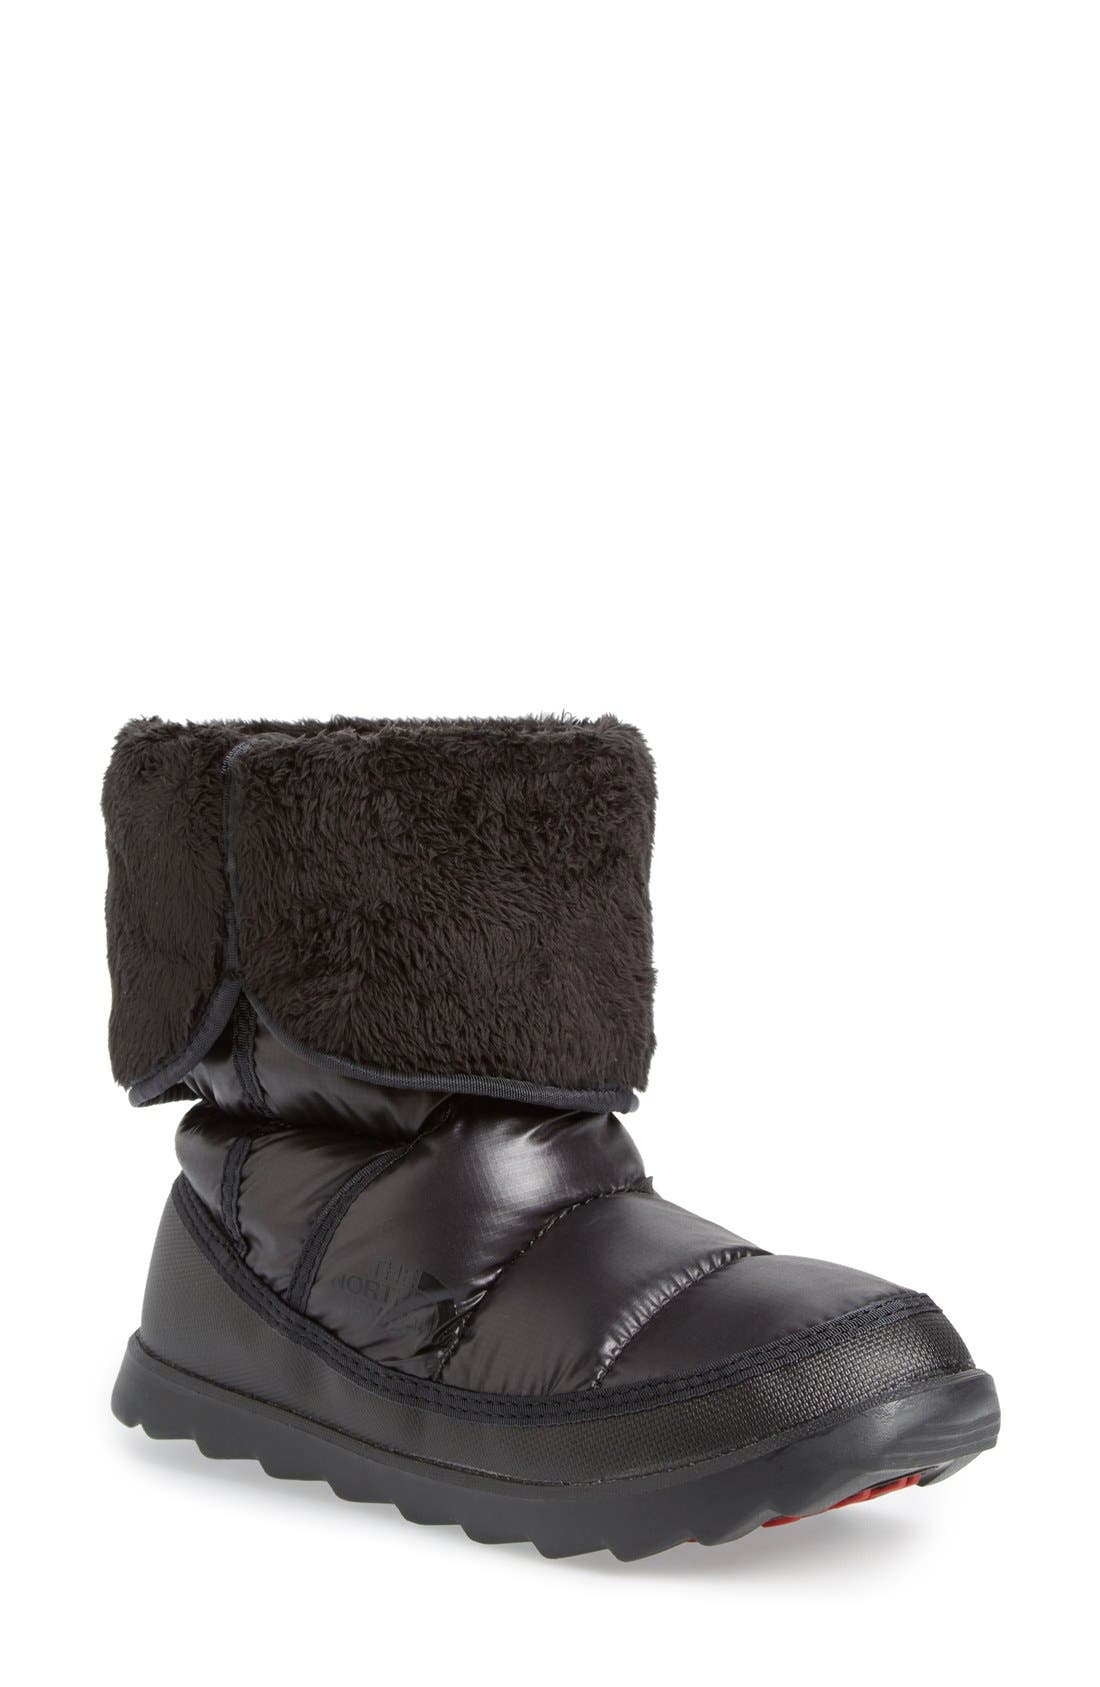 Alternate Image 1 Selected - The North Face 'Amore' Boot (Women)